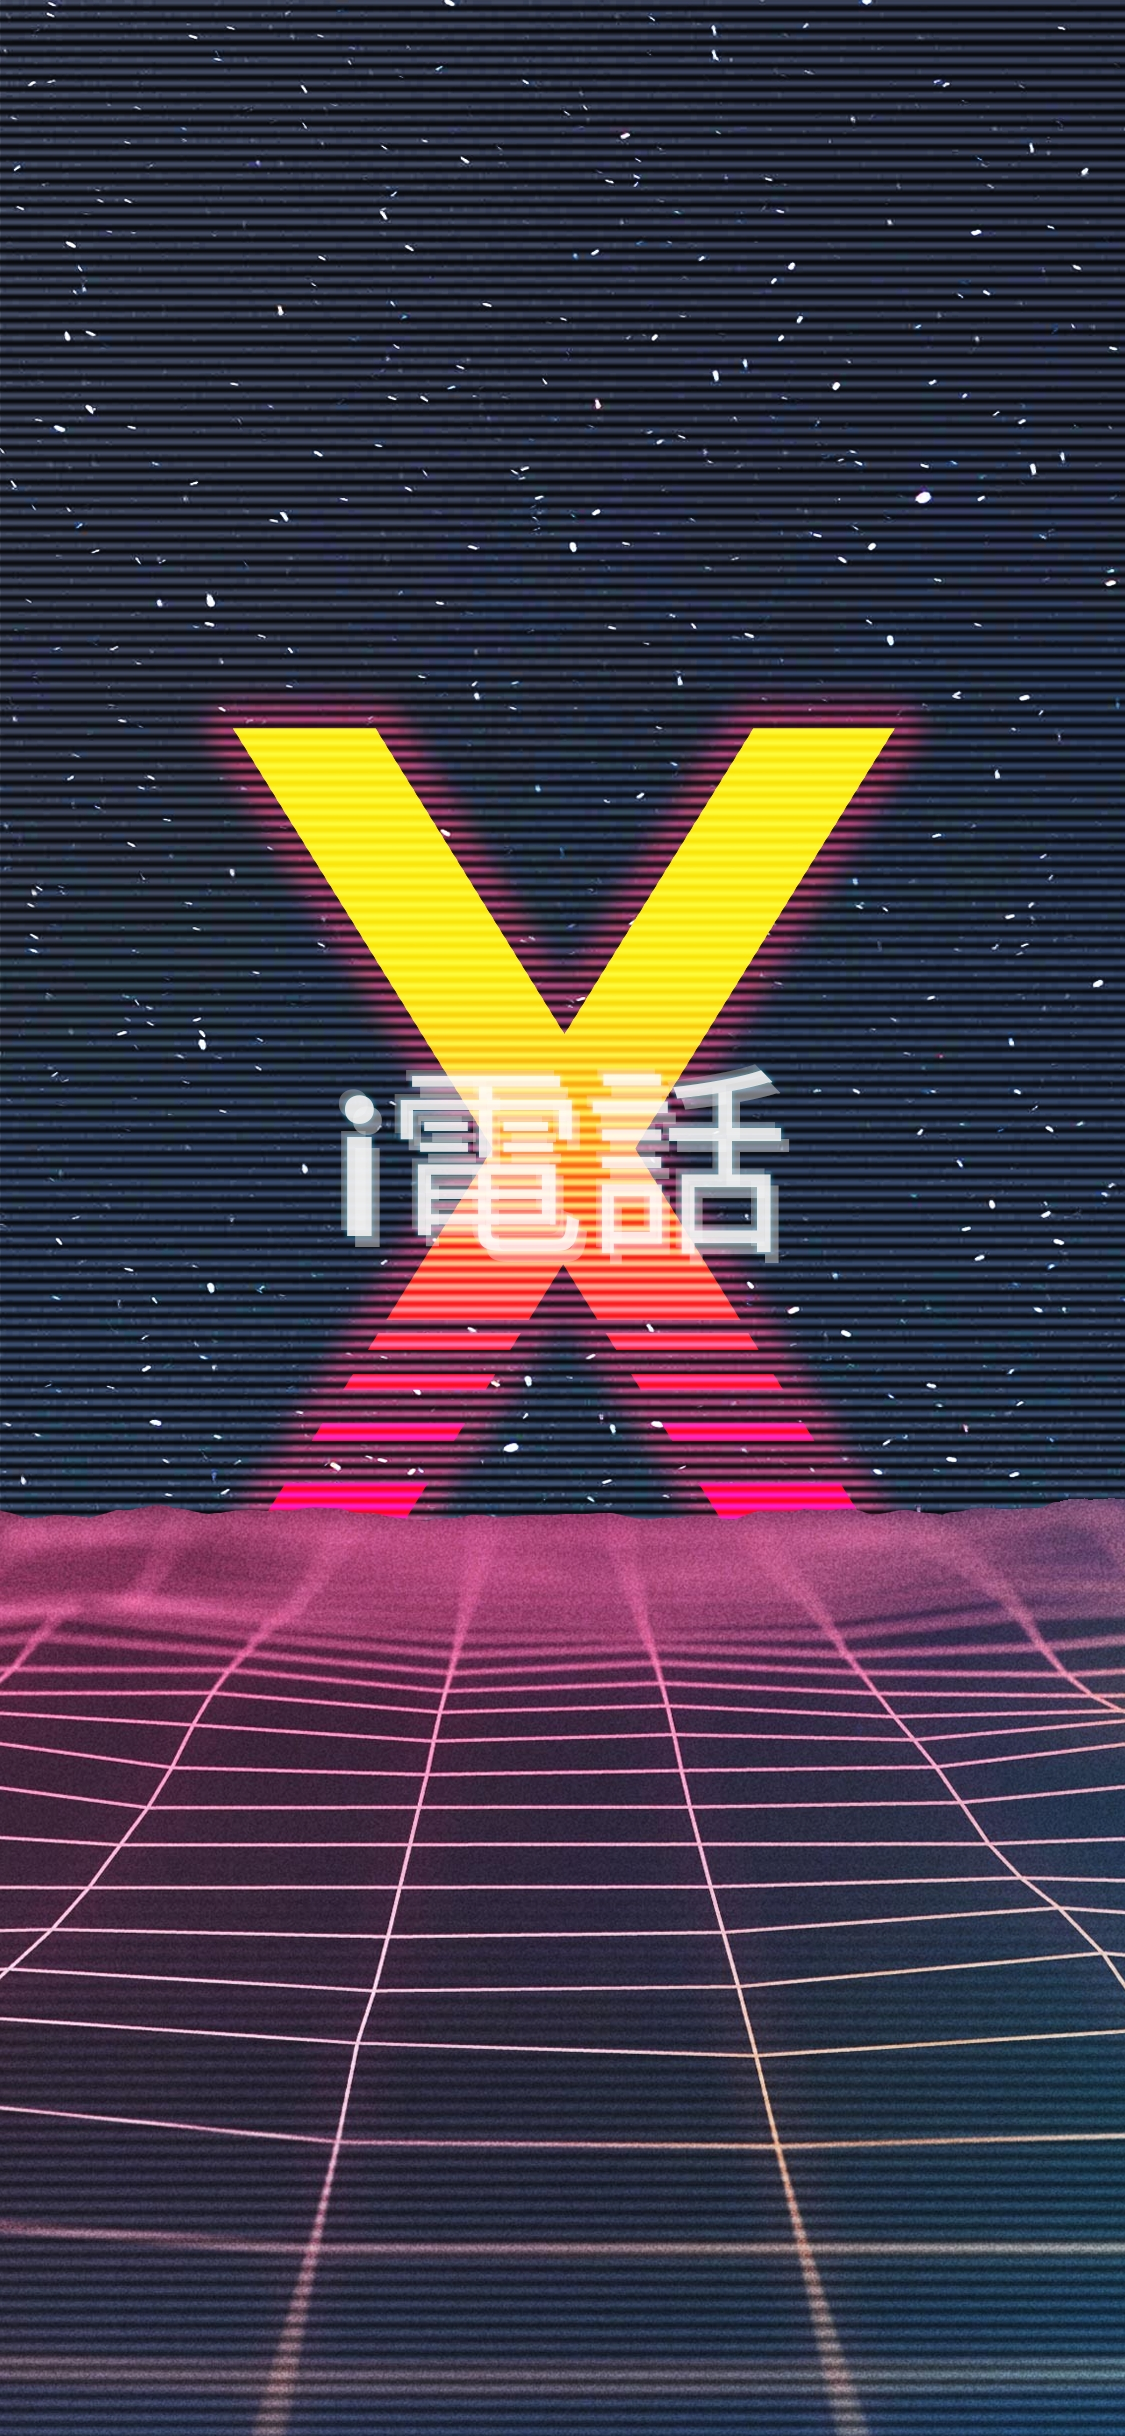 80s Style Vintage 80s Aesthetic Wallpaper Iphone Largest Wallpaper Portal Explore and download tons of high quality 80s wallpapers all for free! largest wallpaper portal